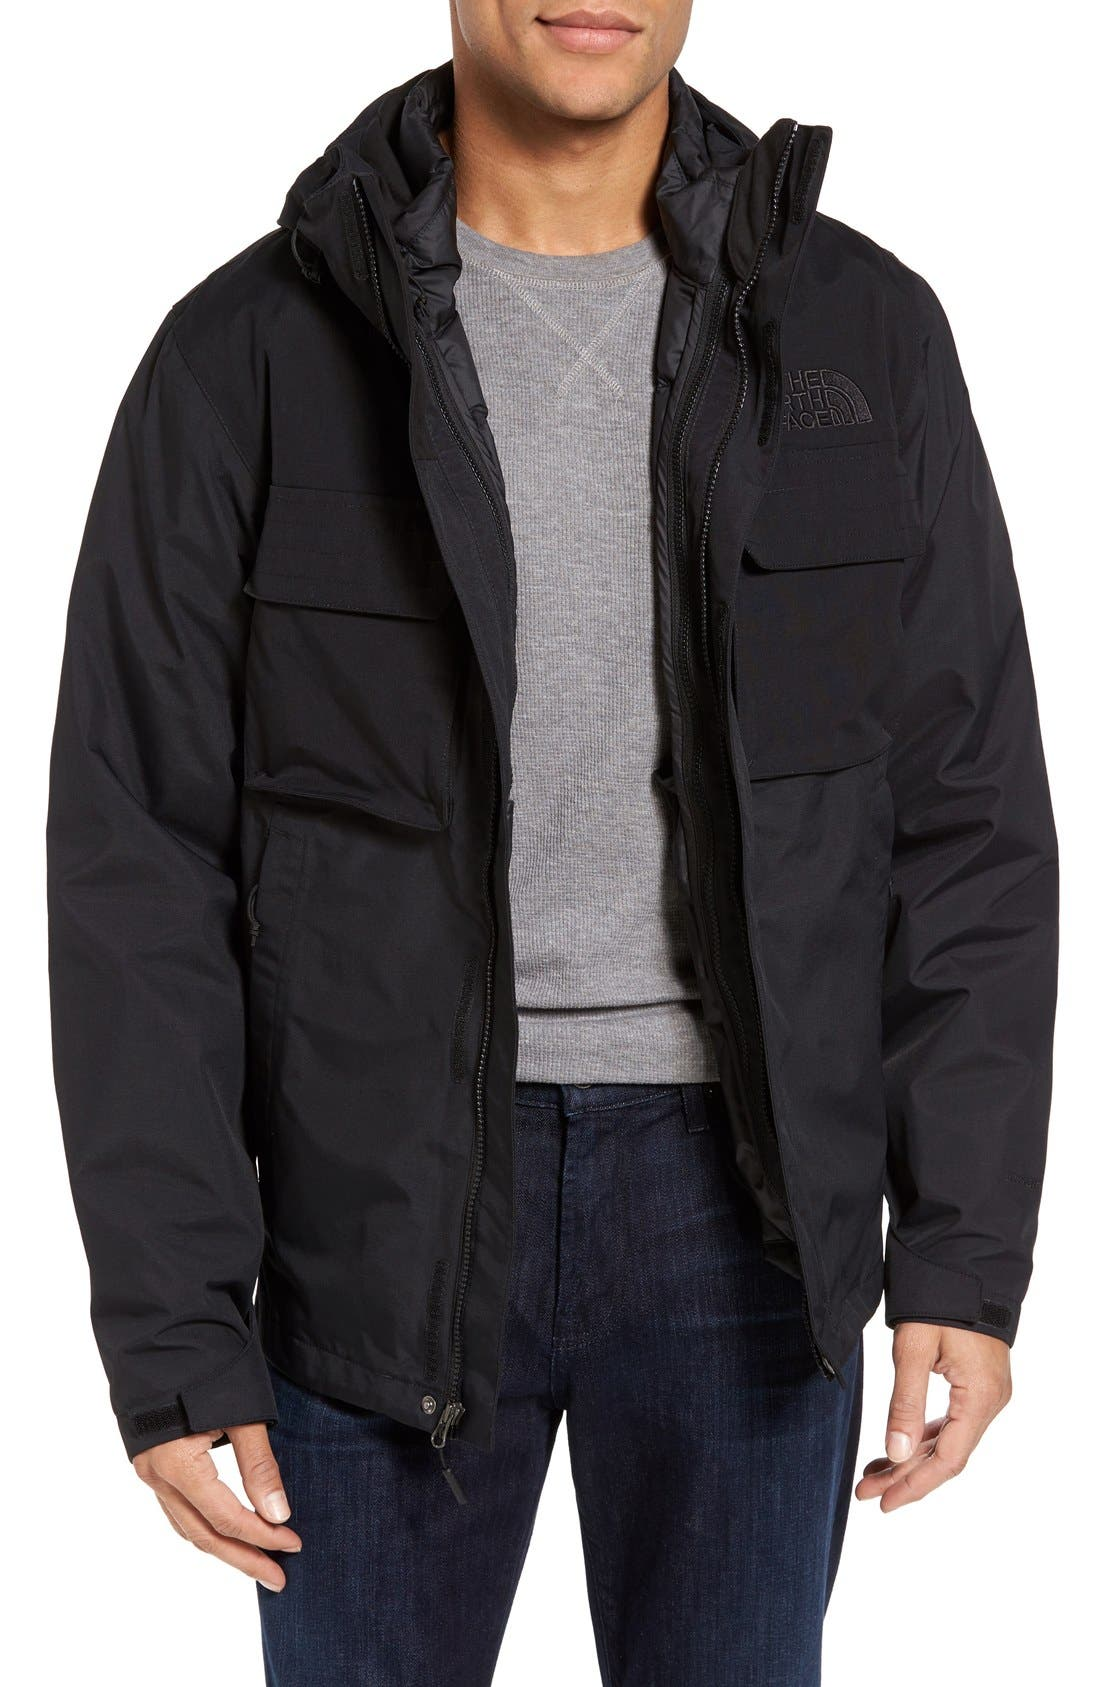 Alternate Image 1 Selected - The North Face Hauser TriClimate® 3-in-1 Jacket